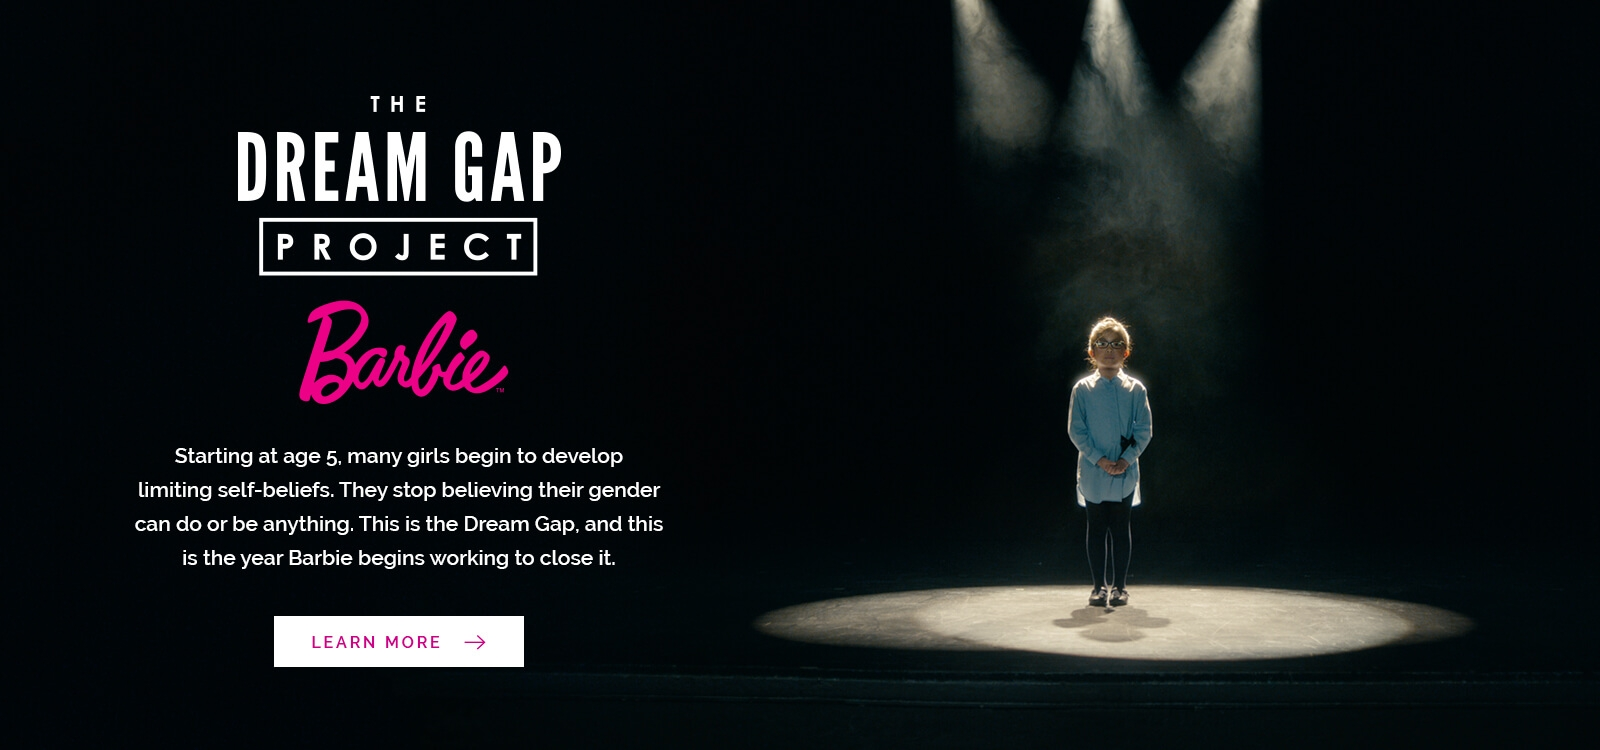 The Dream Gap Project